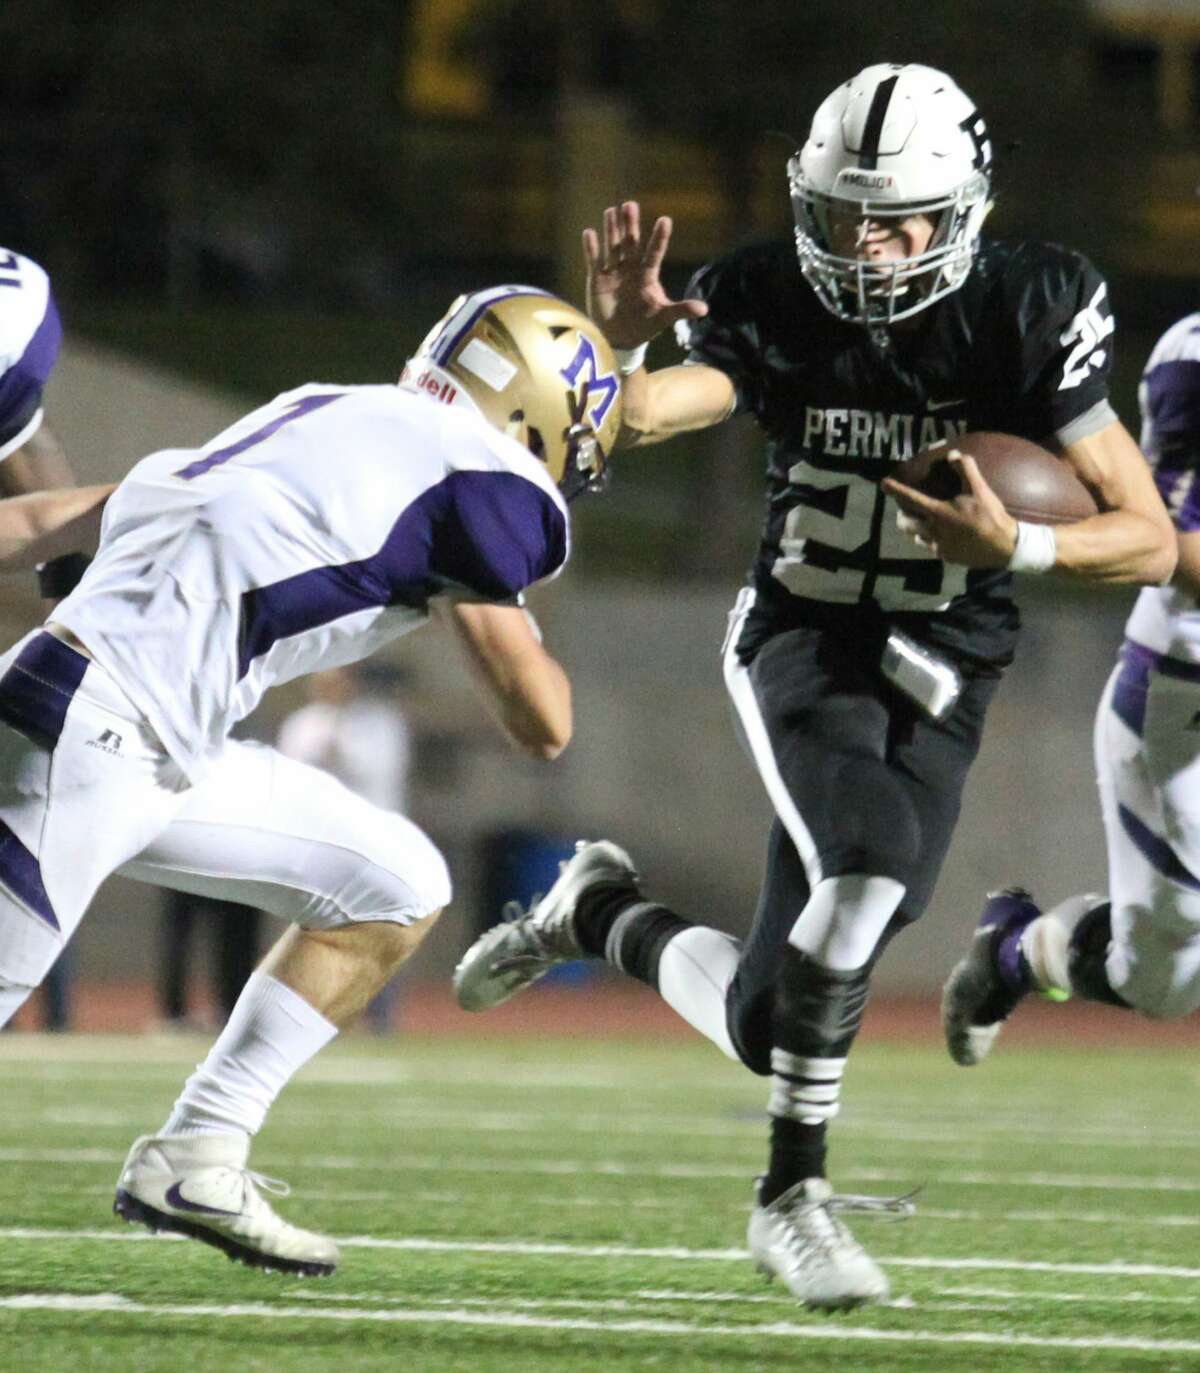 Permian Panthers' quarterback Steve Steen, 25, attempts to stiff arms Midland Bulldogs' McLane Mannix, 1, during the first quarter Friday night at Ratliff Stadium.